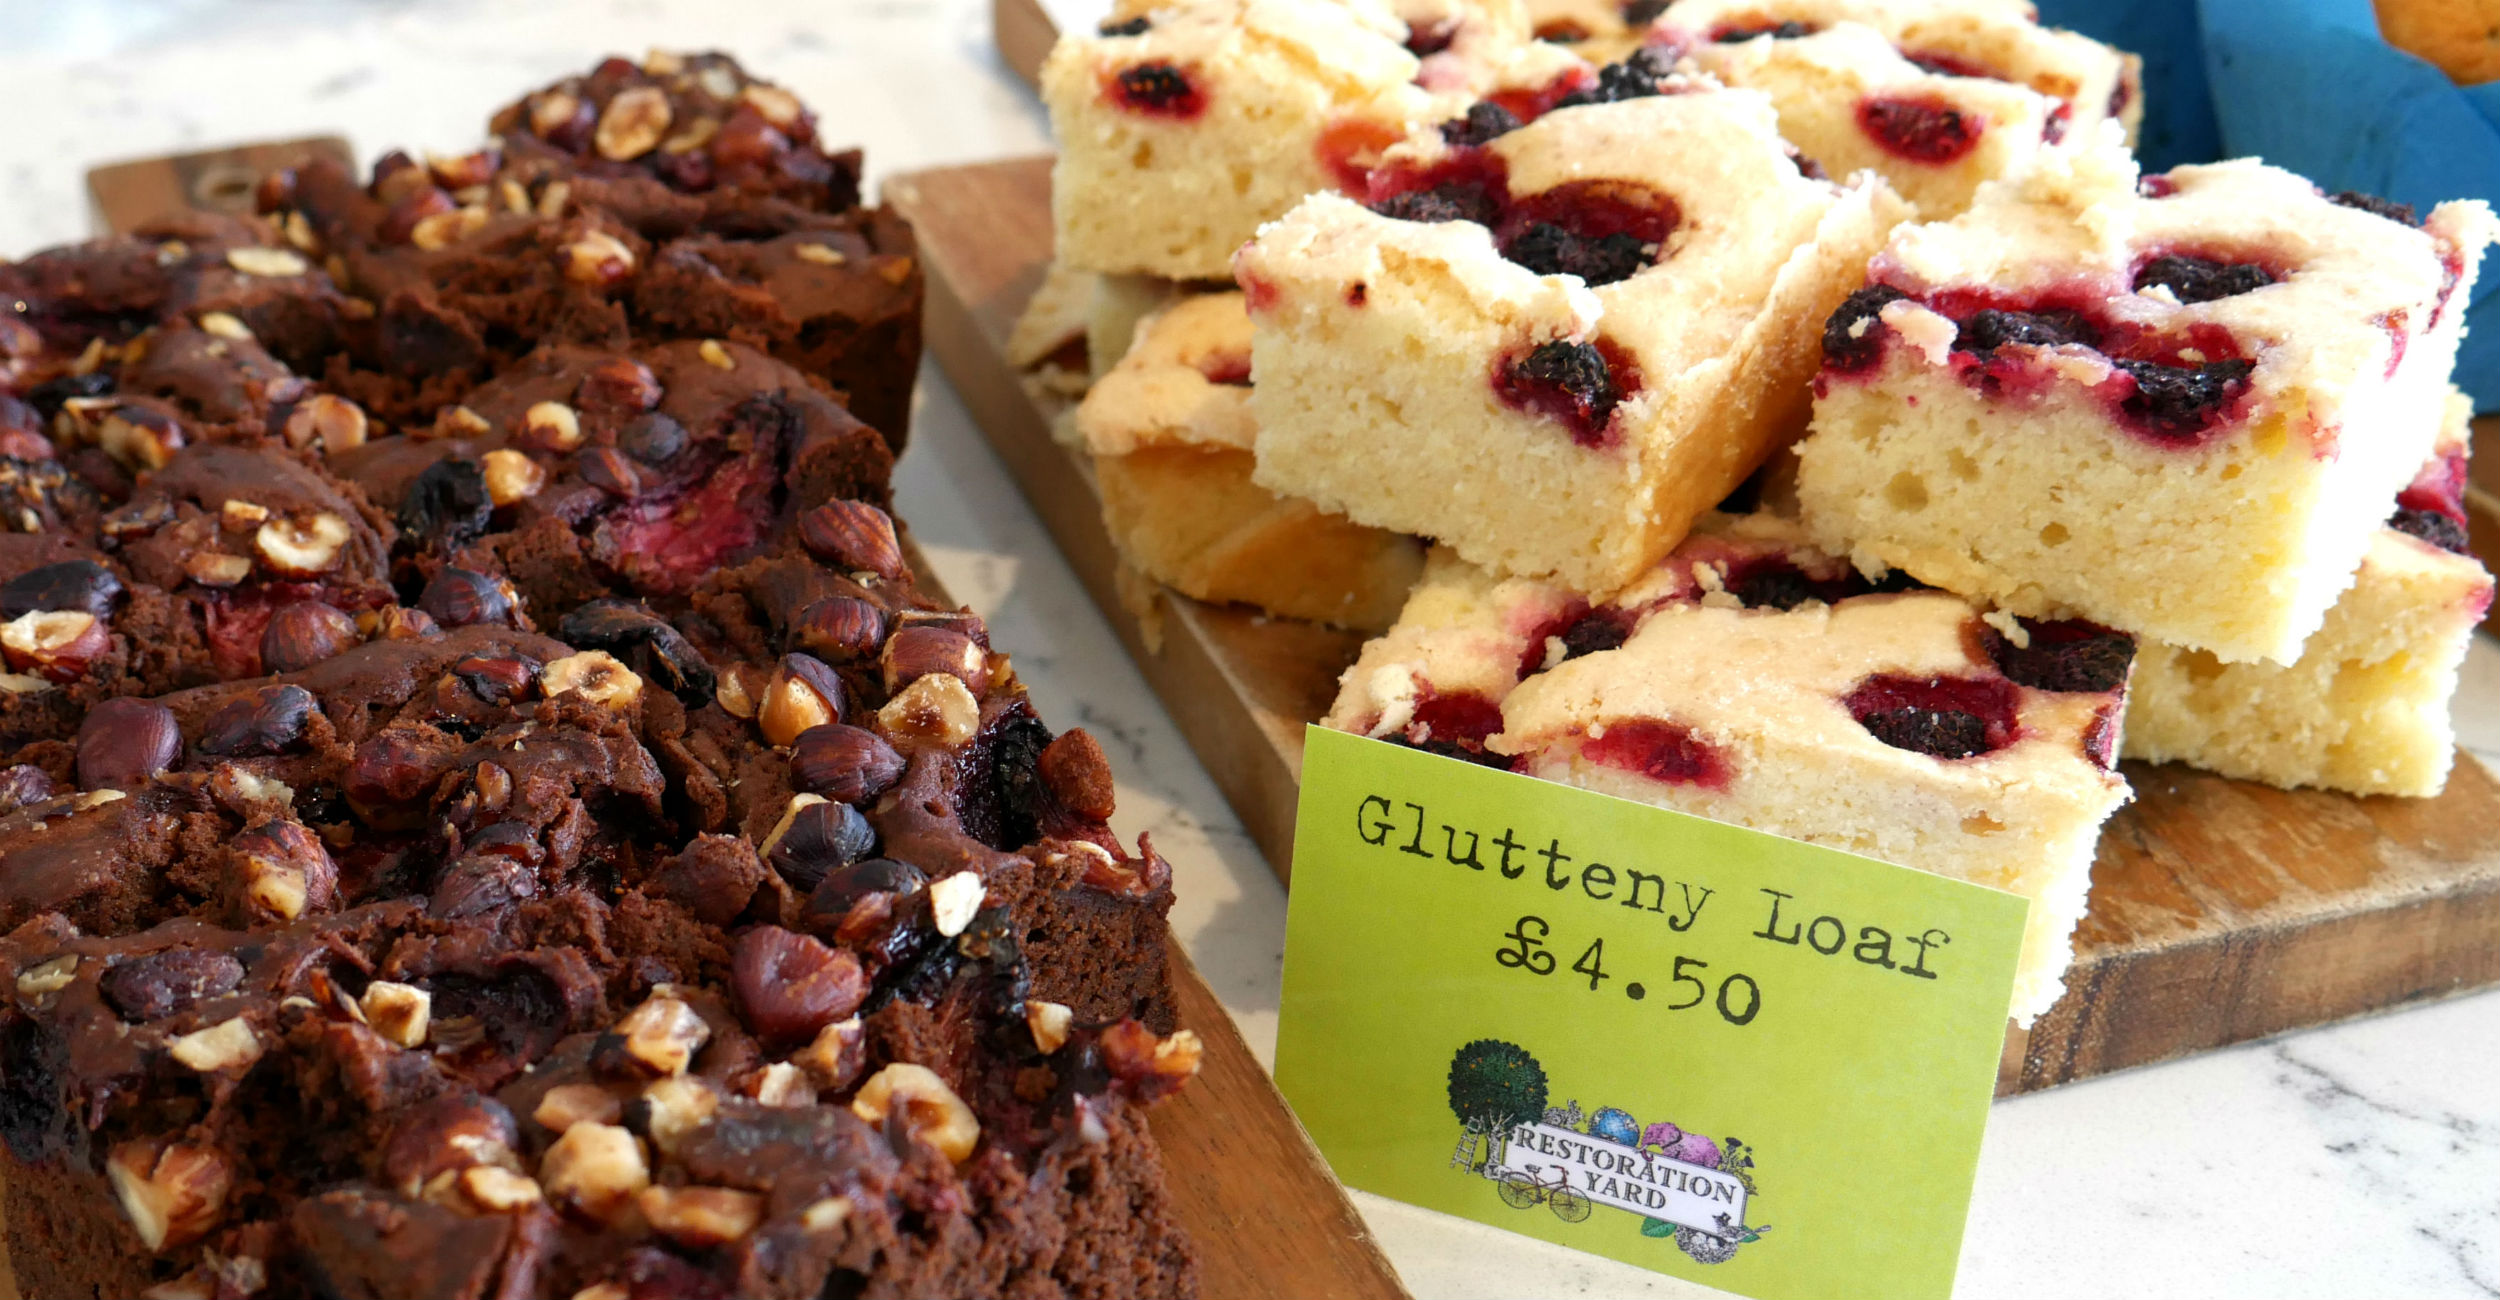 Vegan and Gluten Free Cakes at The Coffee Bar